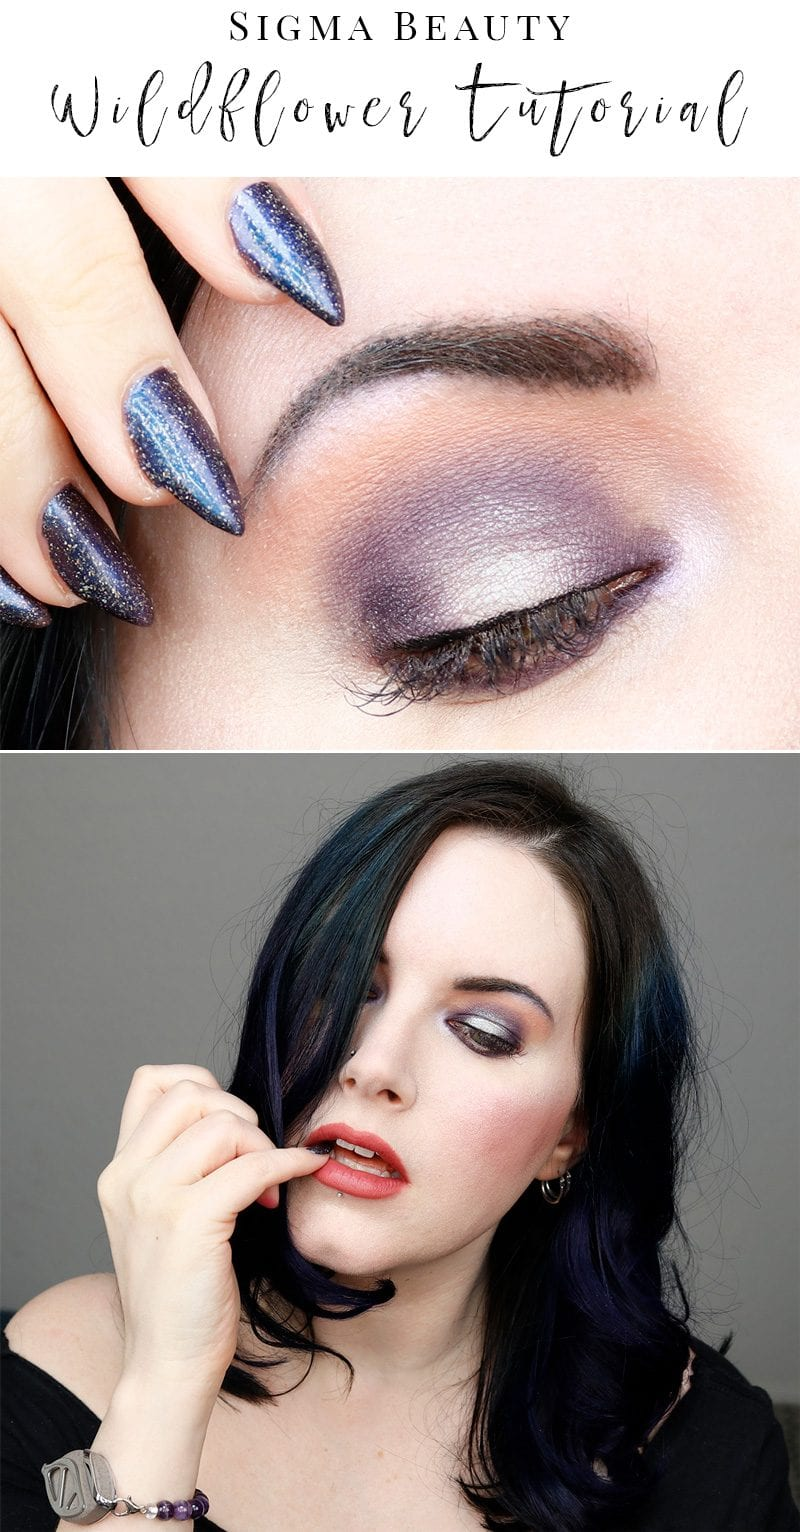 Sigma Wildflower Palette Tutorial - If you love purple, you need to pick up this palette! It's amazing!